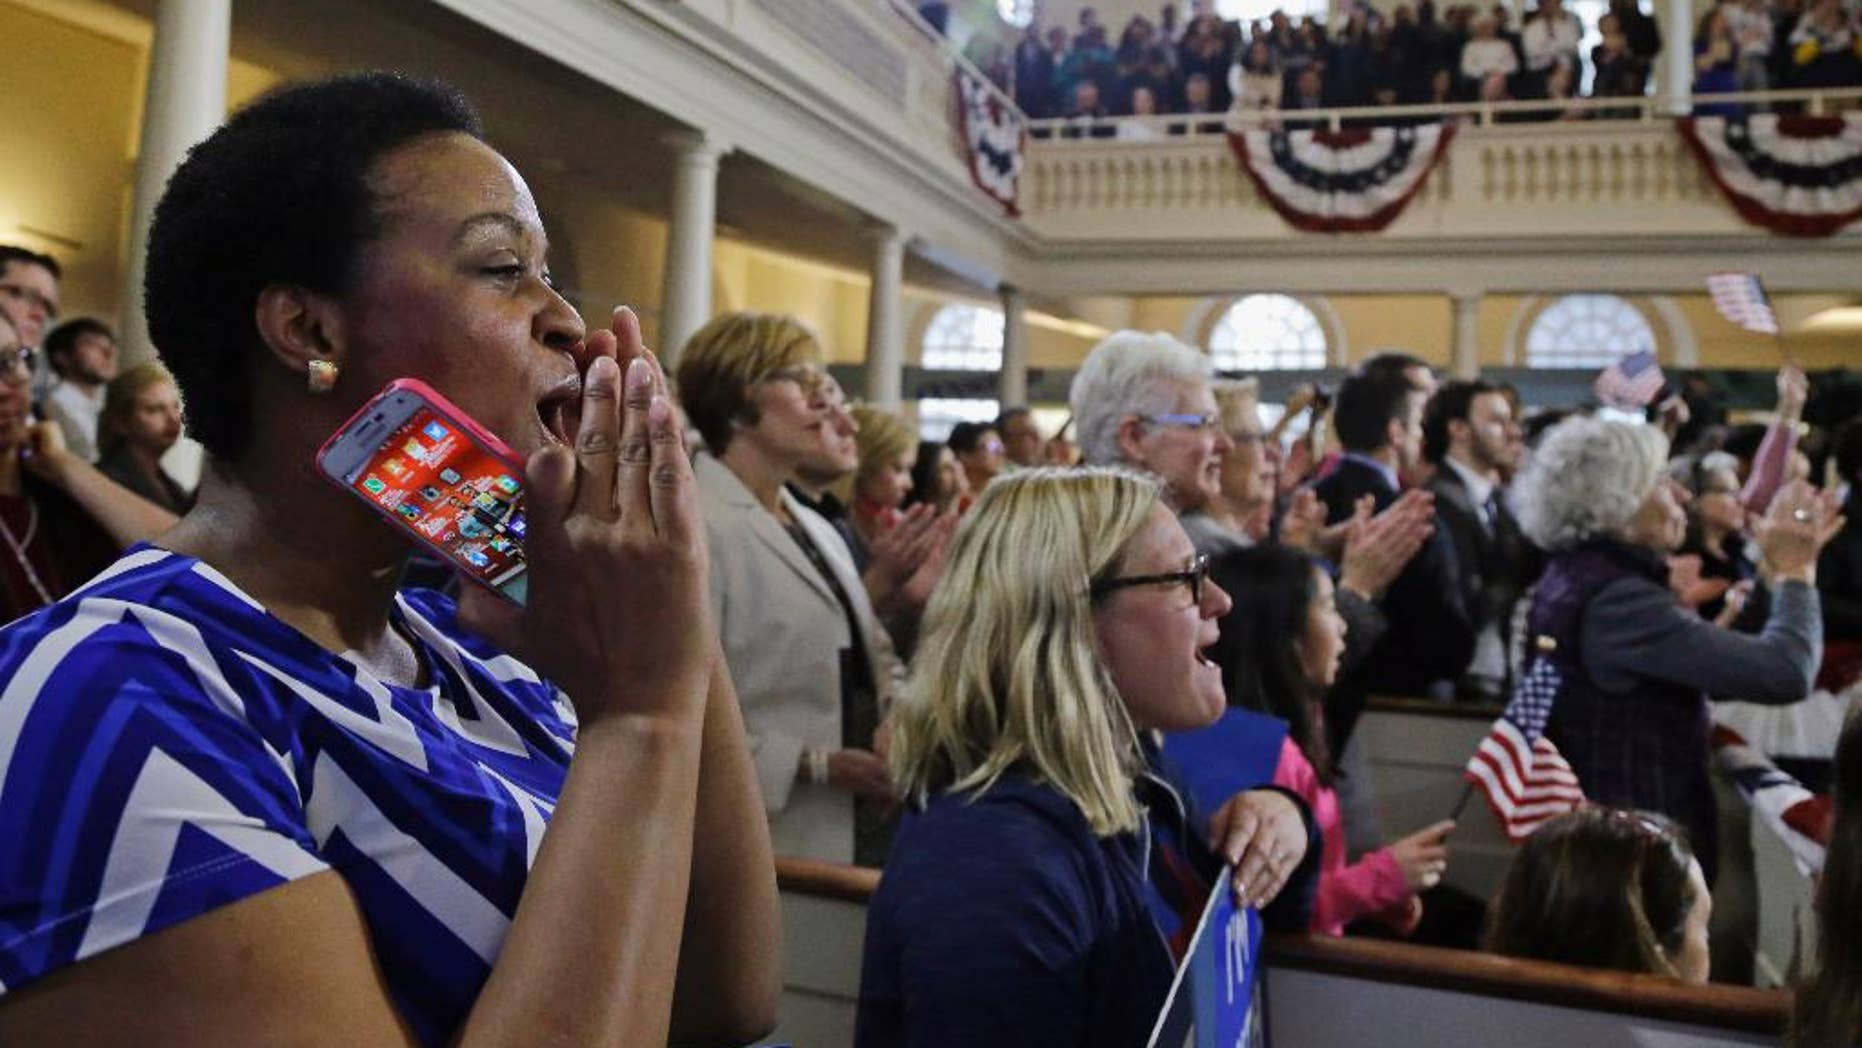 FILE- In this Feb. 29, 2016, file photo, supporters cheer Democratic presidential candidate Hillary Clinton as she speaks during a campaign event at the Old South Meeting House in Boston. The meeting house where colonists gathered to begin challenging British rule before the American Revolution and launched the Boston Tea Party has reopened. (AP Photo/Elise Amendola, File)